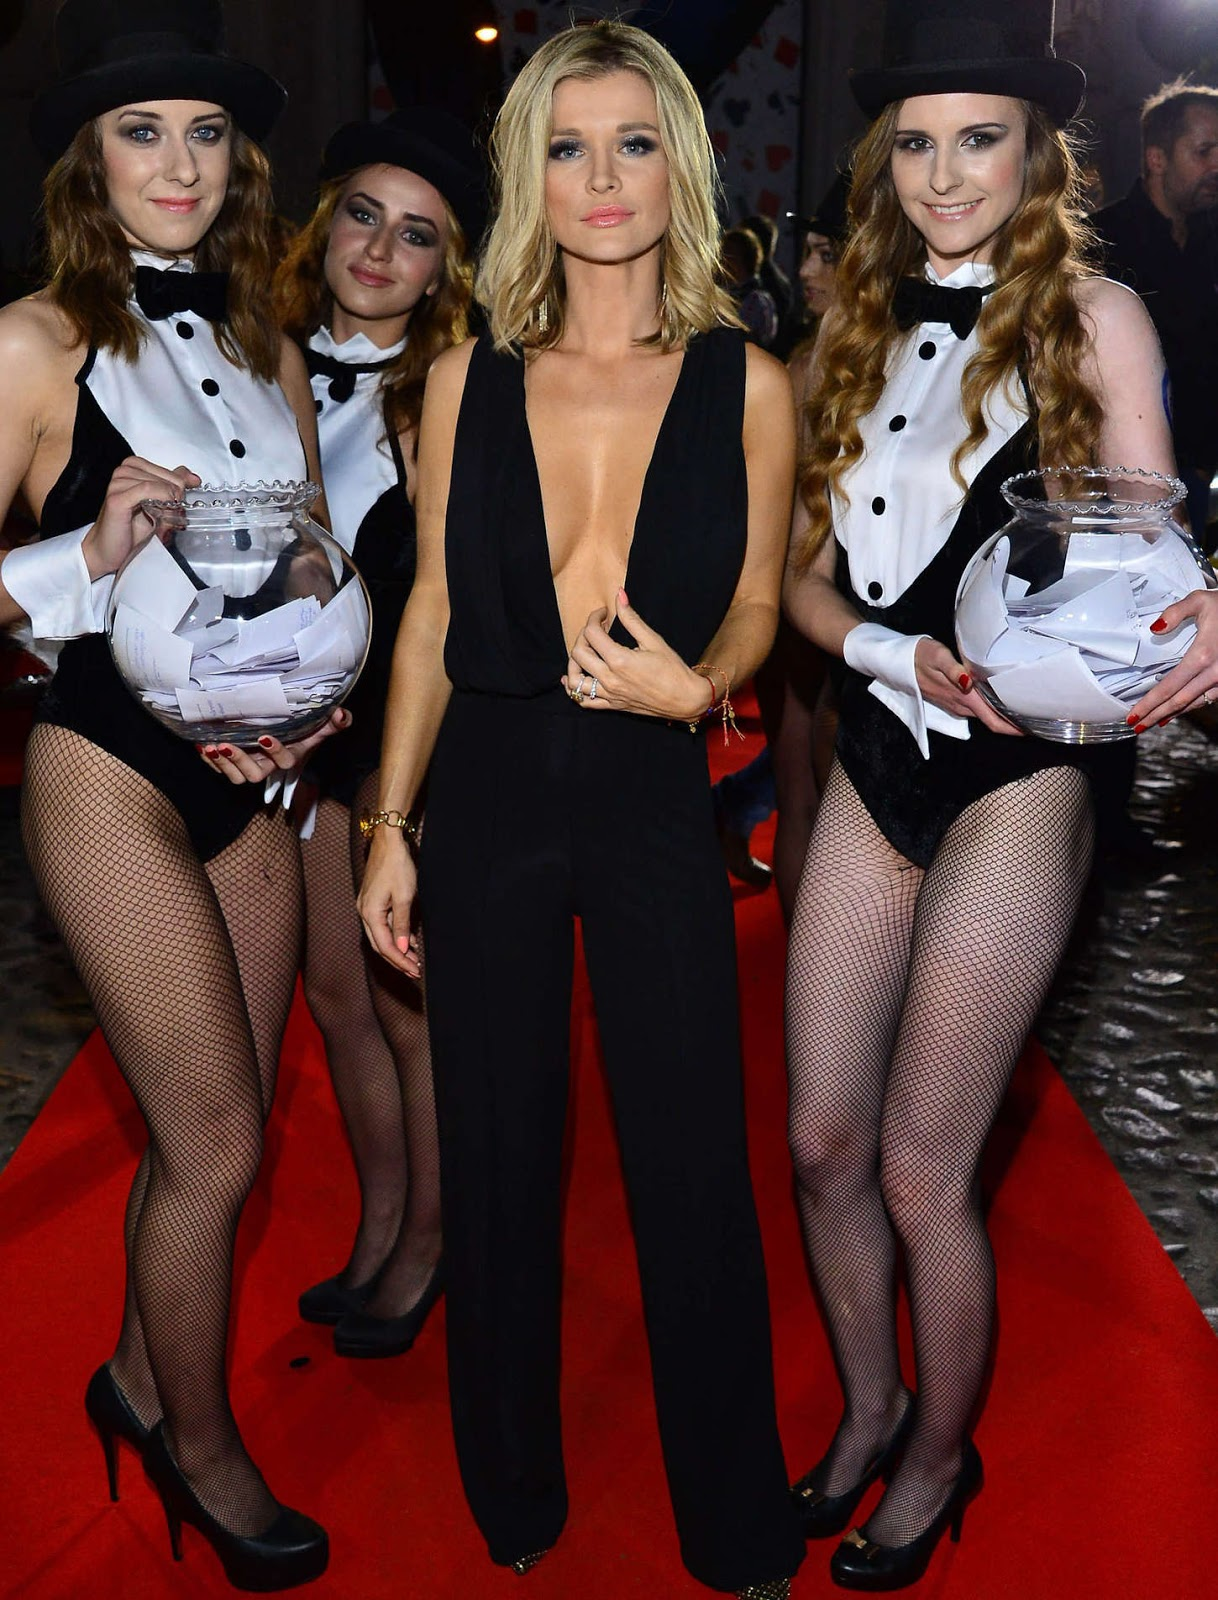 Joanna Krupa in a plunging jumpsuit at the 2015 Playboy Car of the Year event